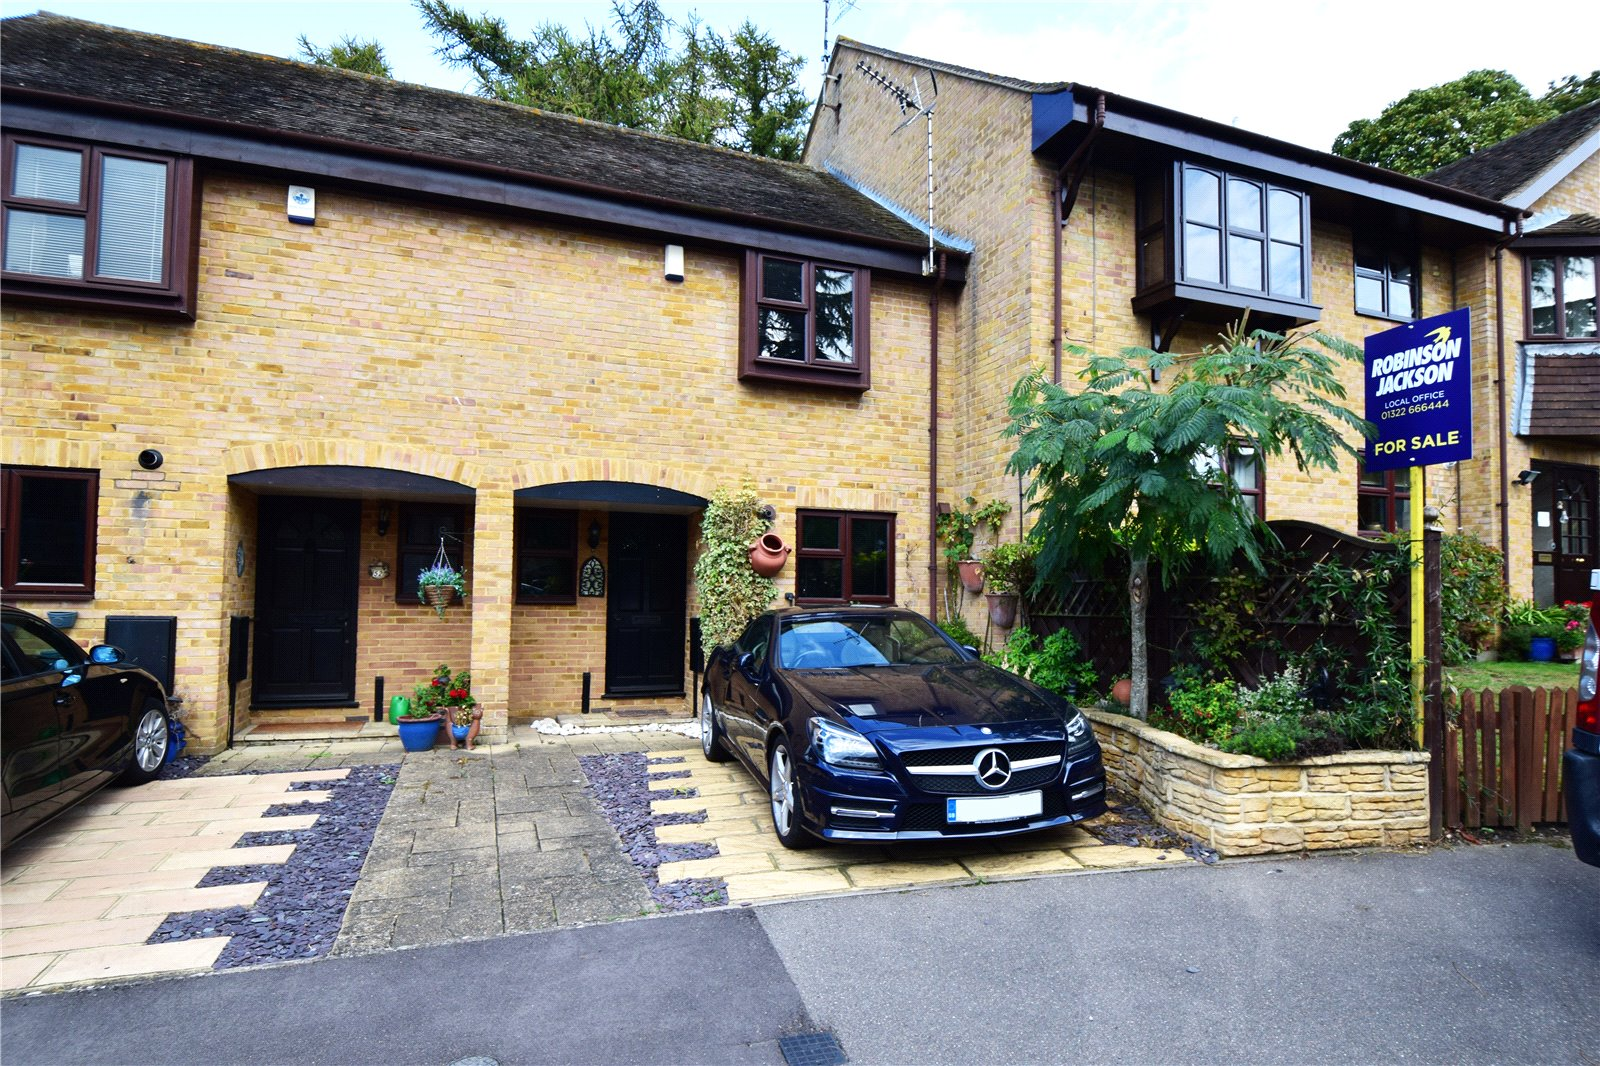 Old Mill Close, Eynsford, Kent, DA4